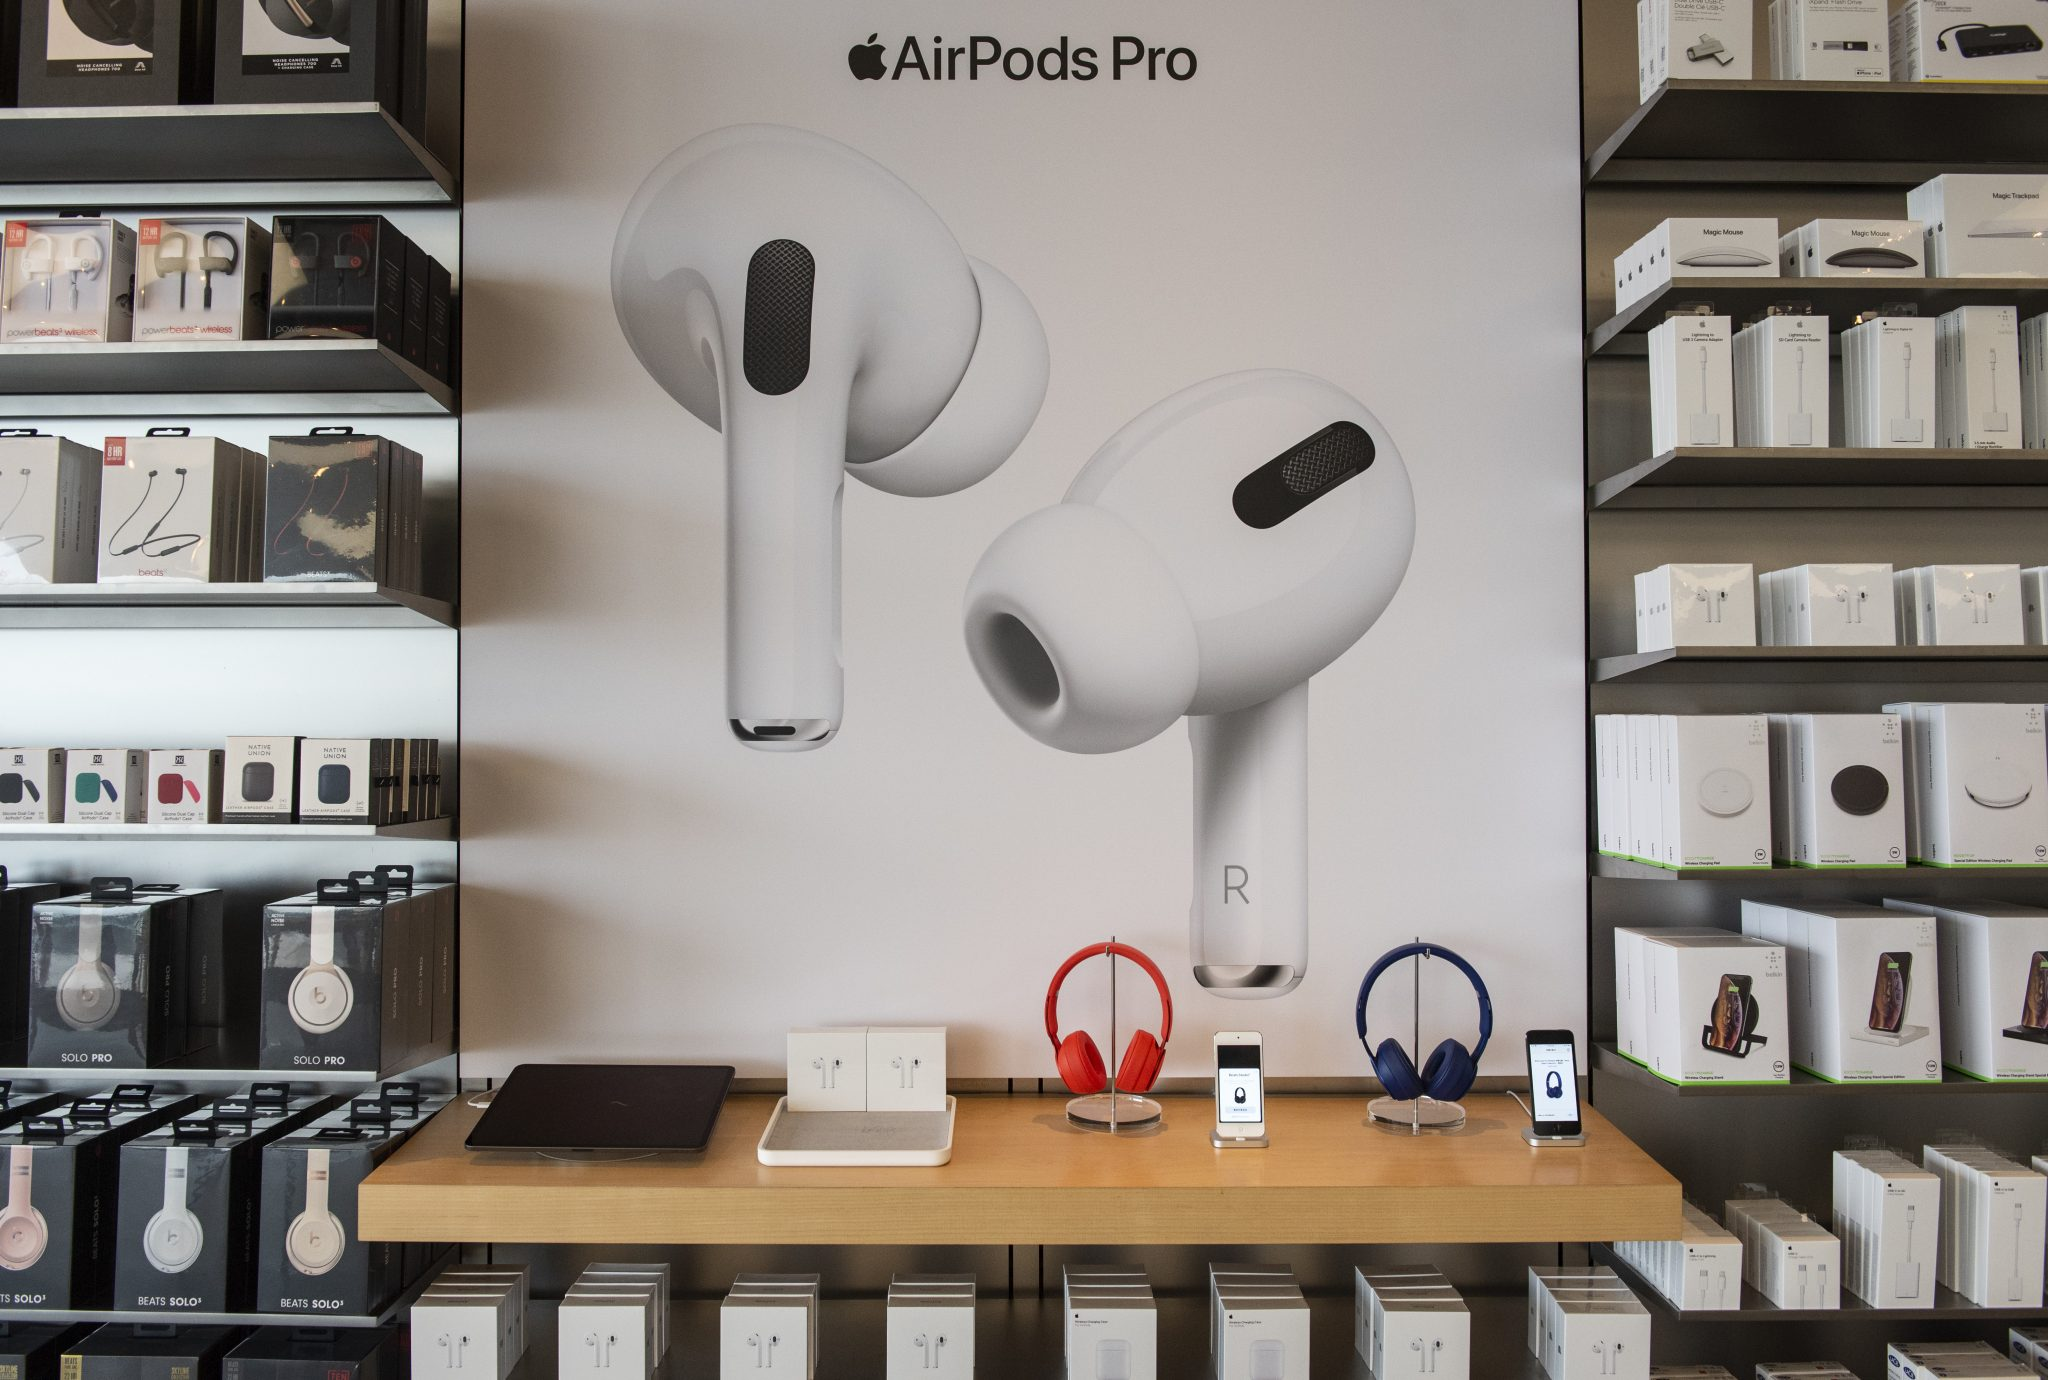 20200214001449096187 original 2048x1380 Is Apple Working On A Budget AirPods Pro?